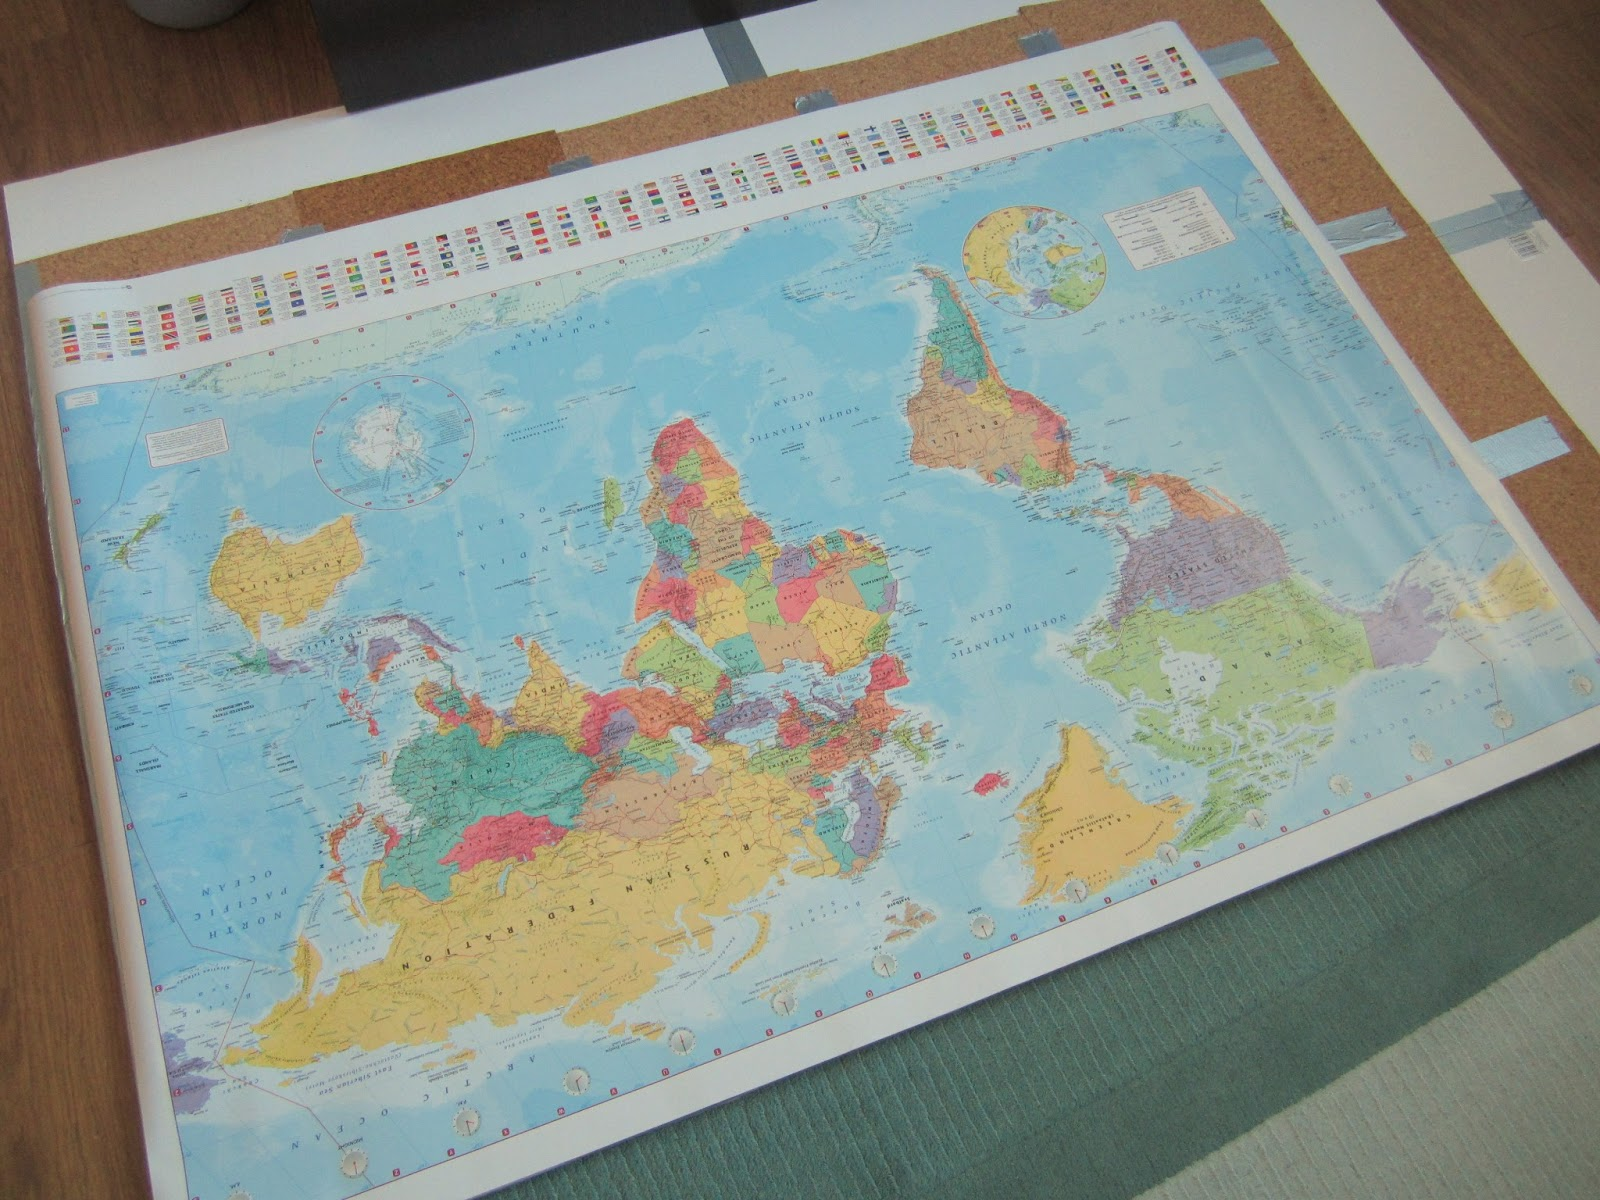 Giant world map pinboard crafty weekend craft projects for the giant world map pinboard crafty weekend craft projects for the weekend gumiabroncs Images